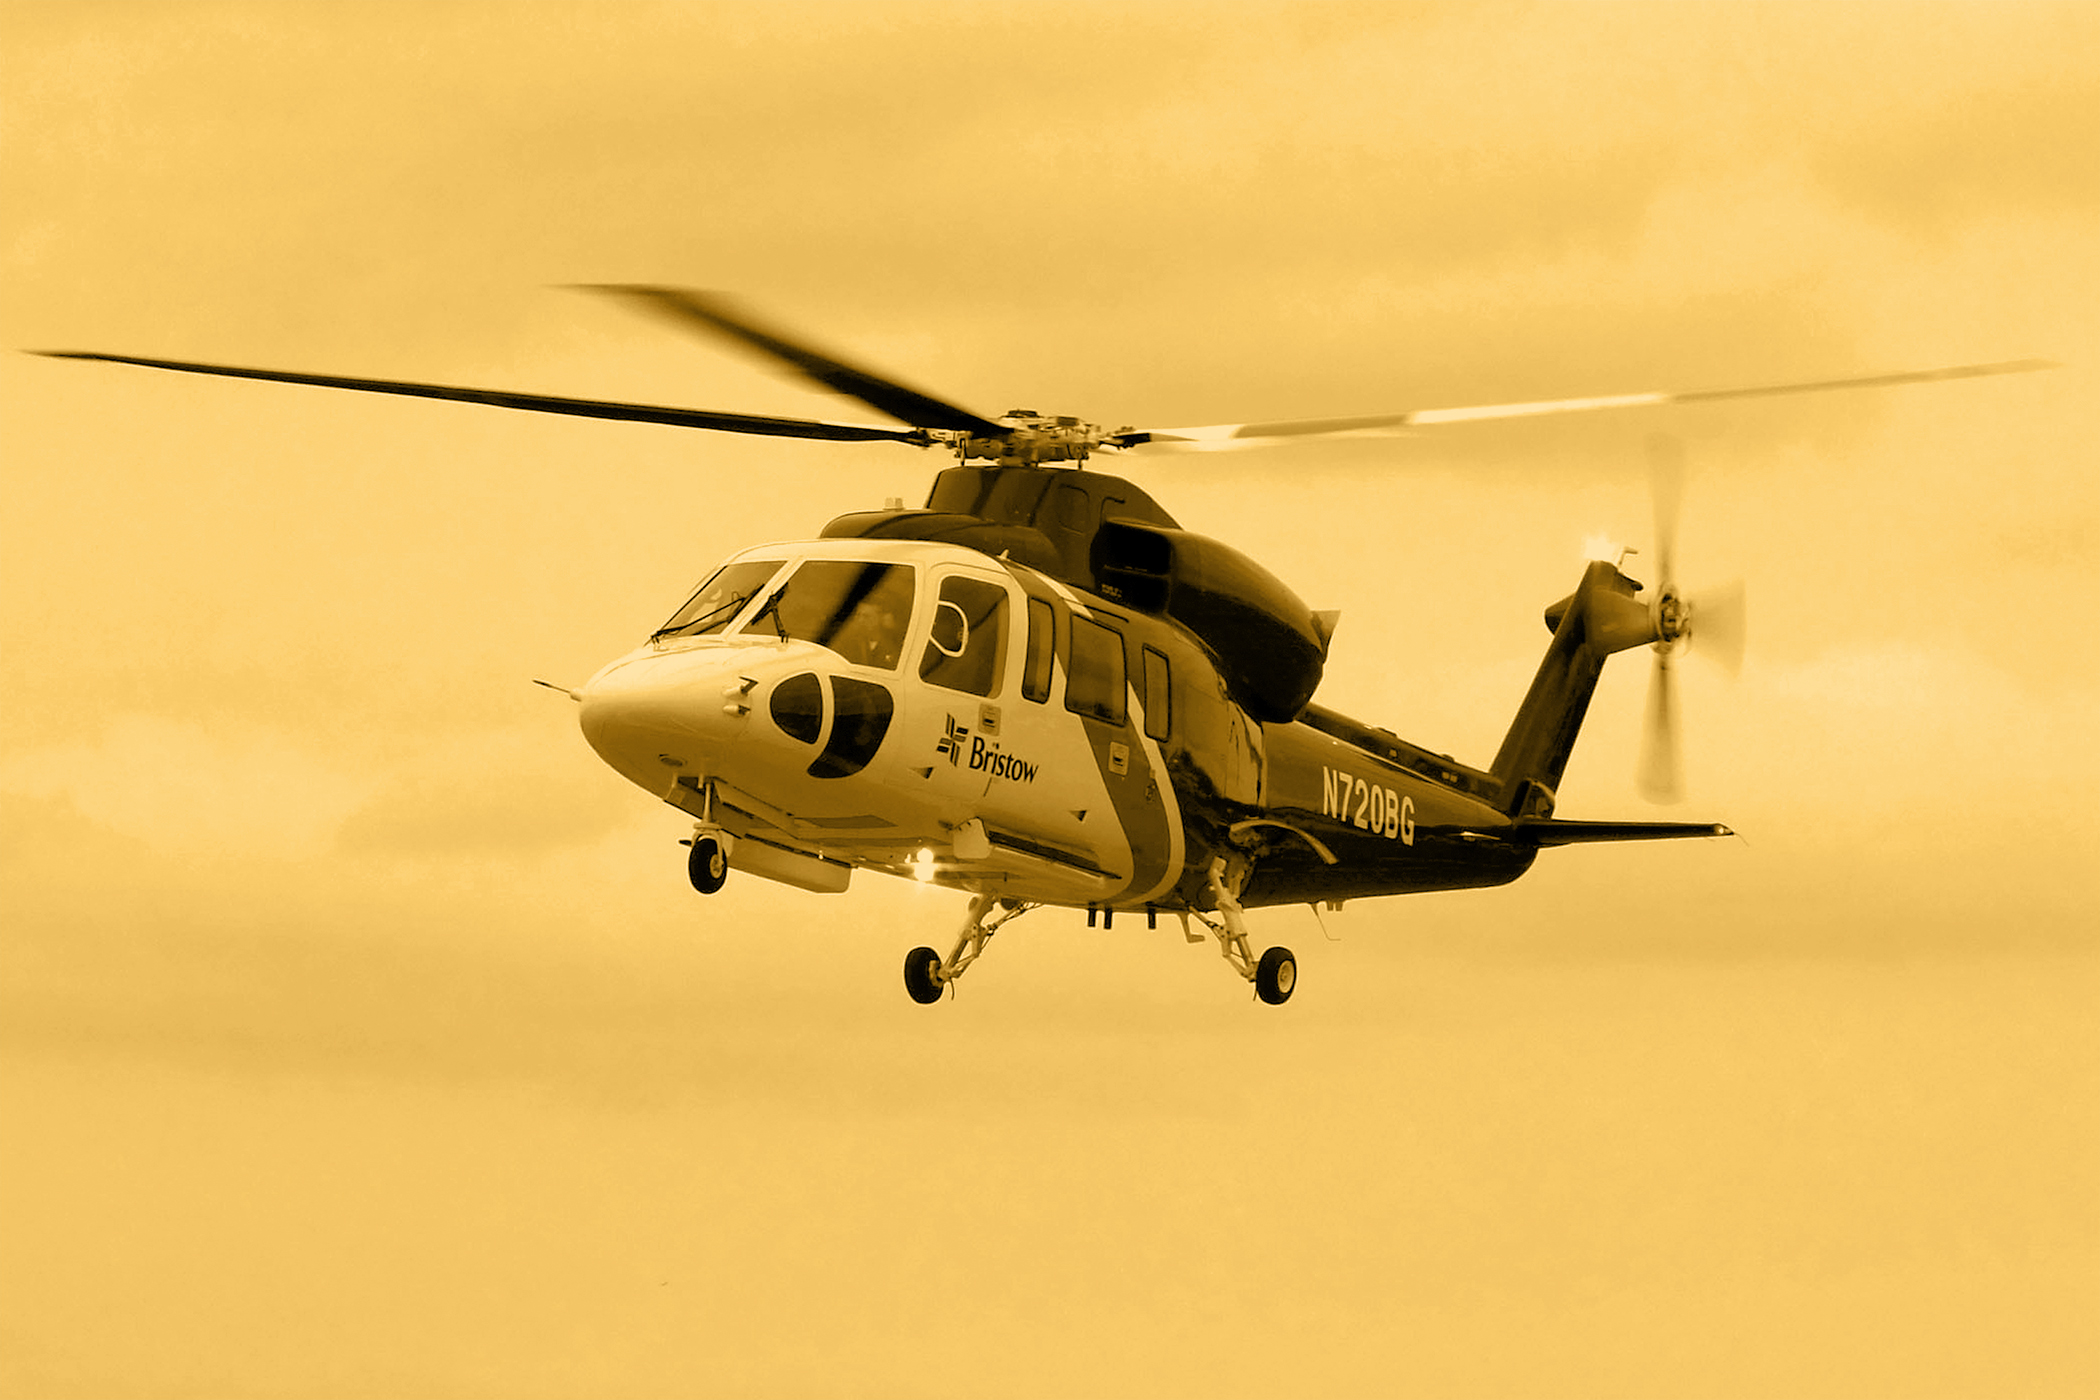 In December 2013, Sikorsky Aircraft Corp. delivered its first fully configured S-76D(TM) helicopter, the latest in the long and highly successful Sikorsky S-76(TM) commercial aircraft family, to the Bristow Group Inc.